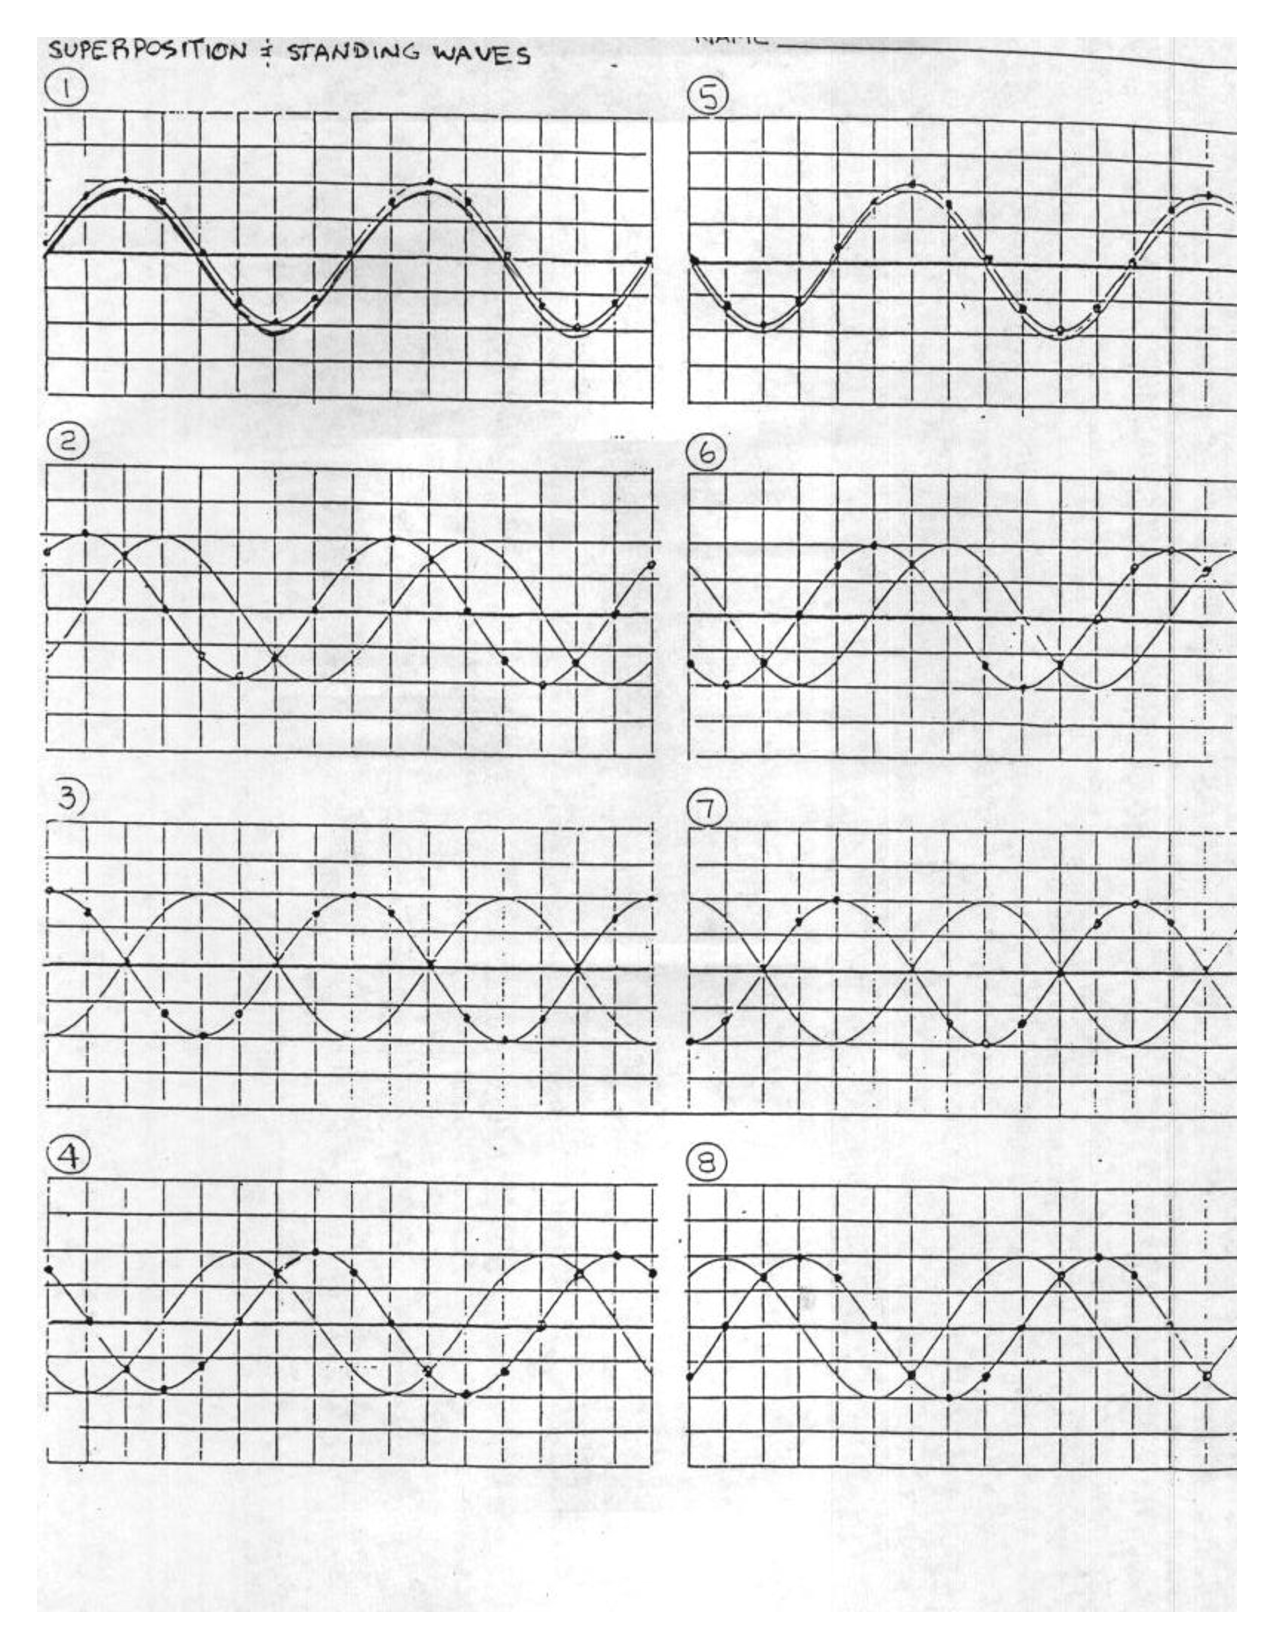 10 Best Images Of Transverse Waves Worksheet